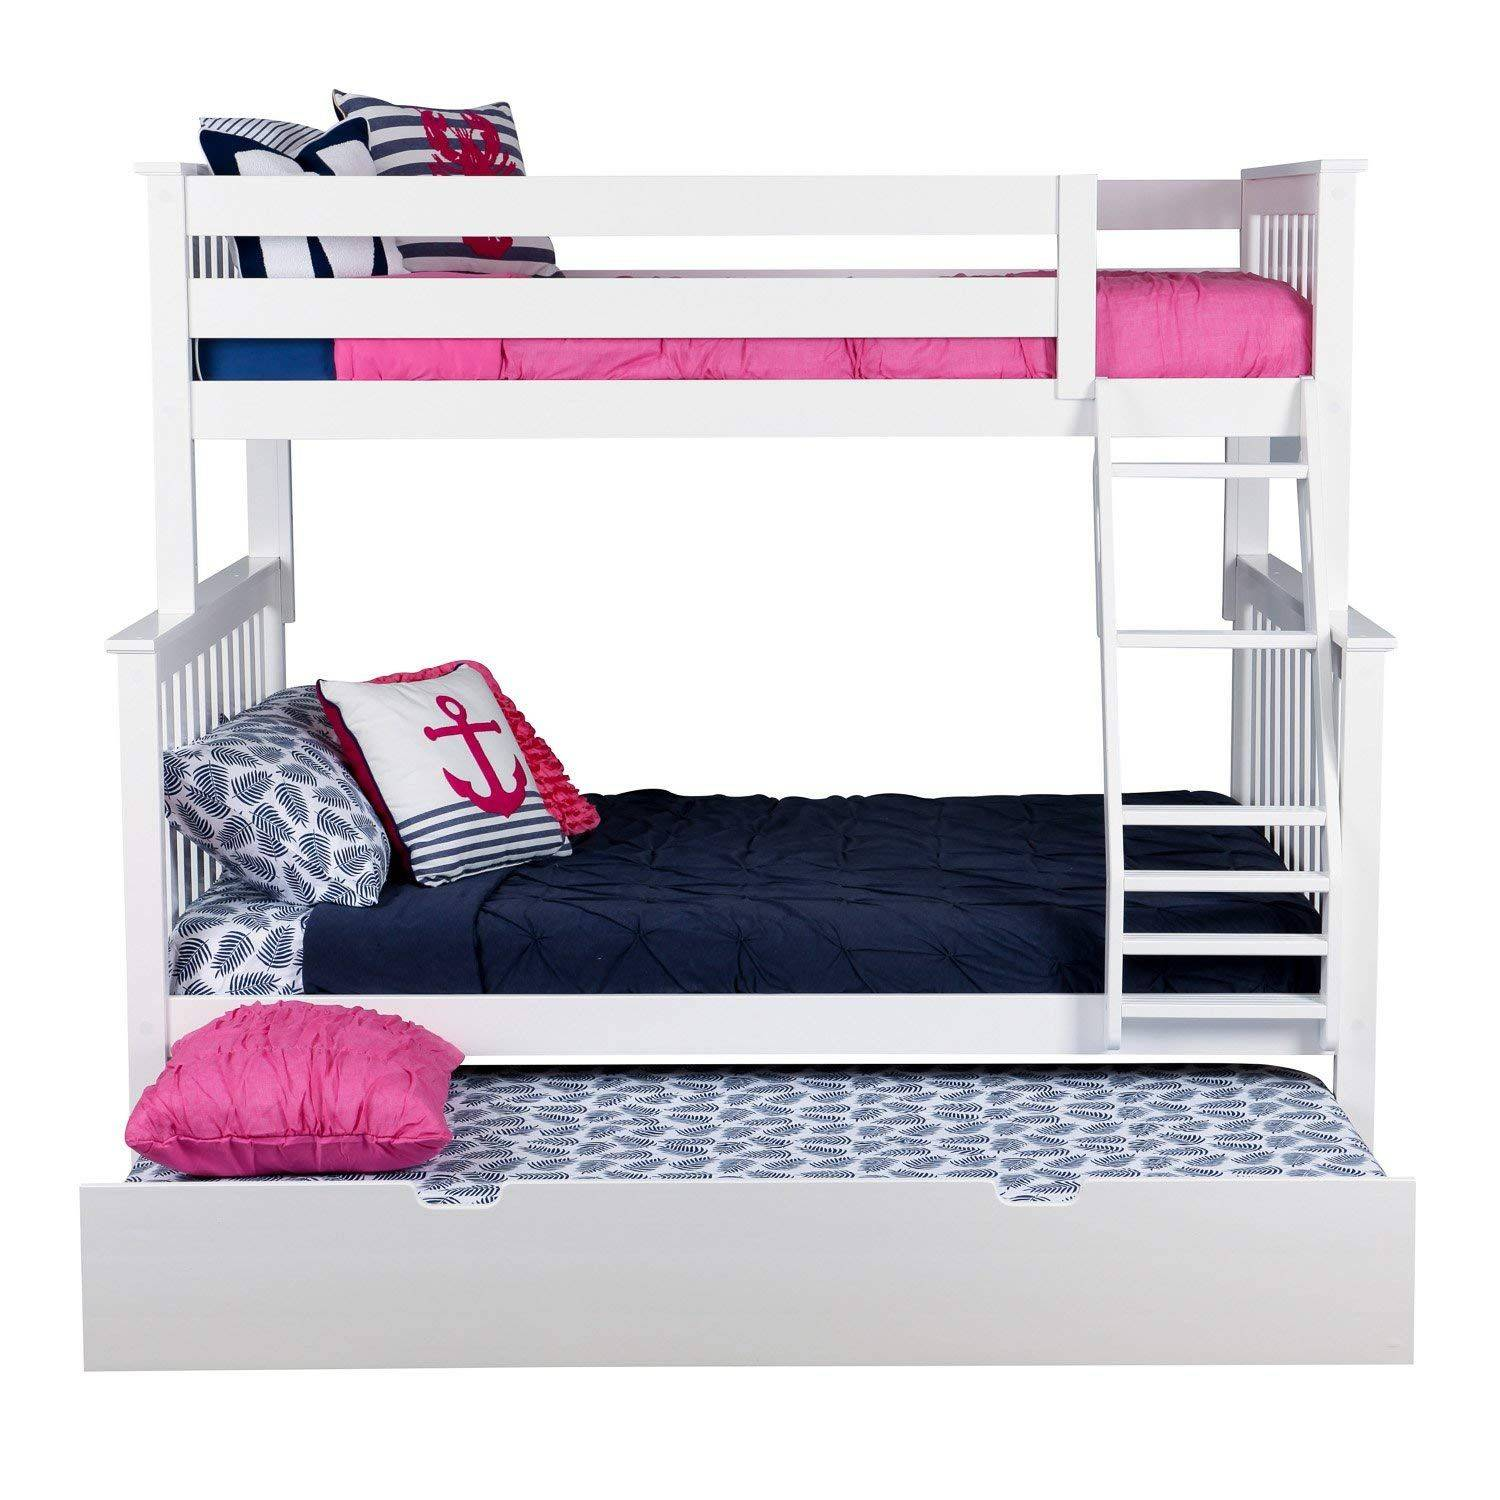 Bunk Beds New Heavy Duty Bunk Beds for Adults Bunk Beds for Heavy People